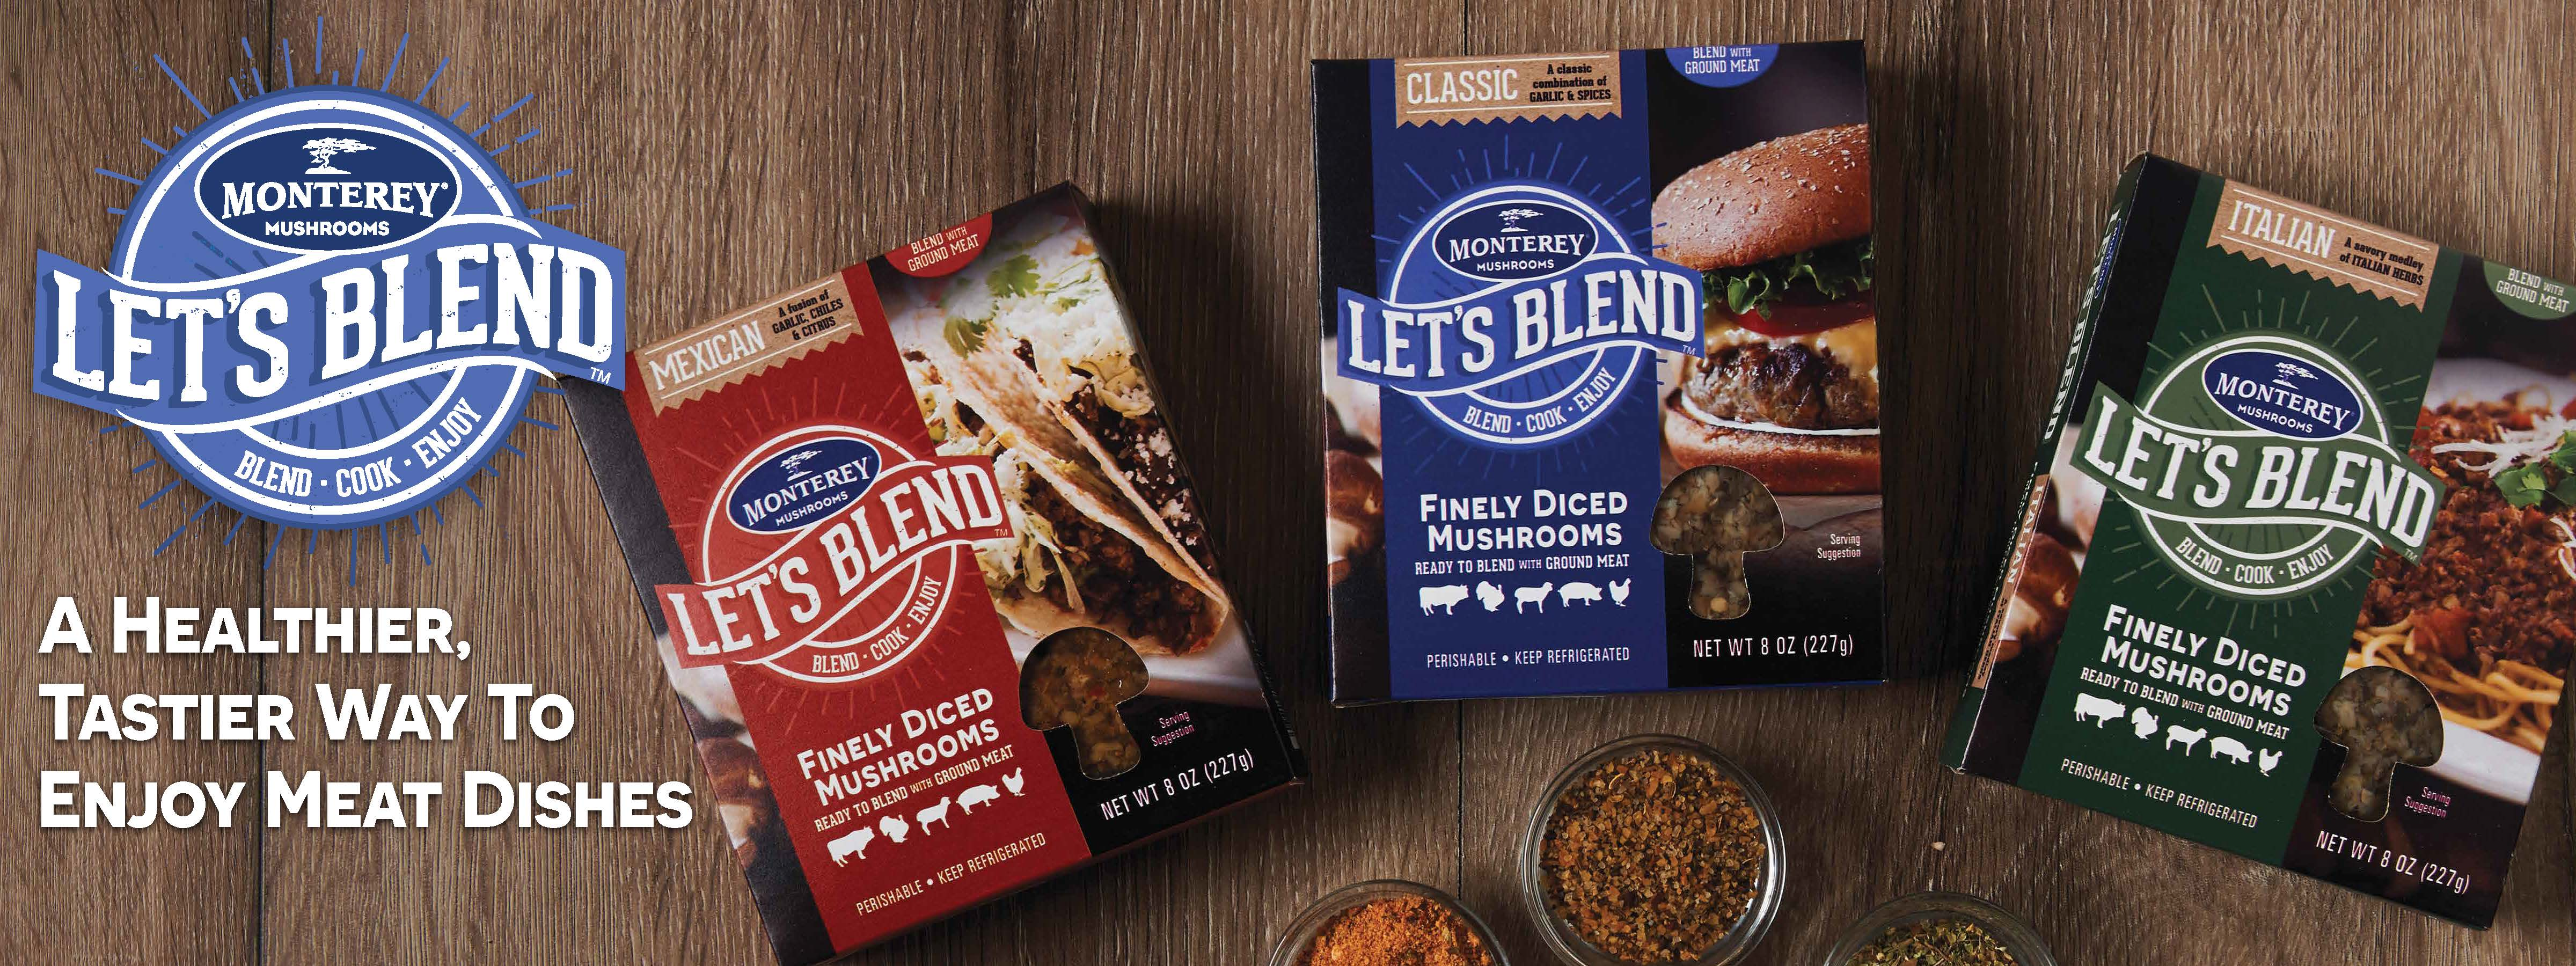 Announcing our new product: Let's Blend®!